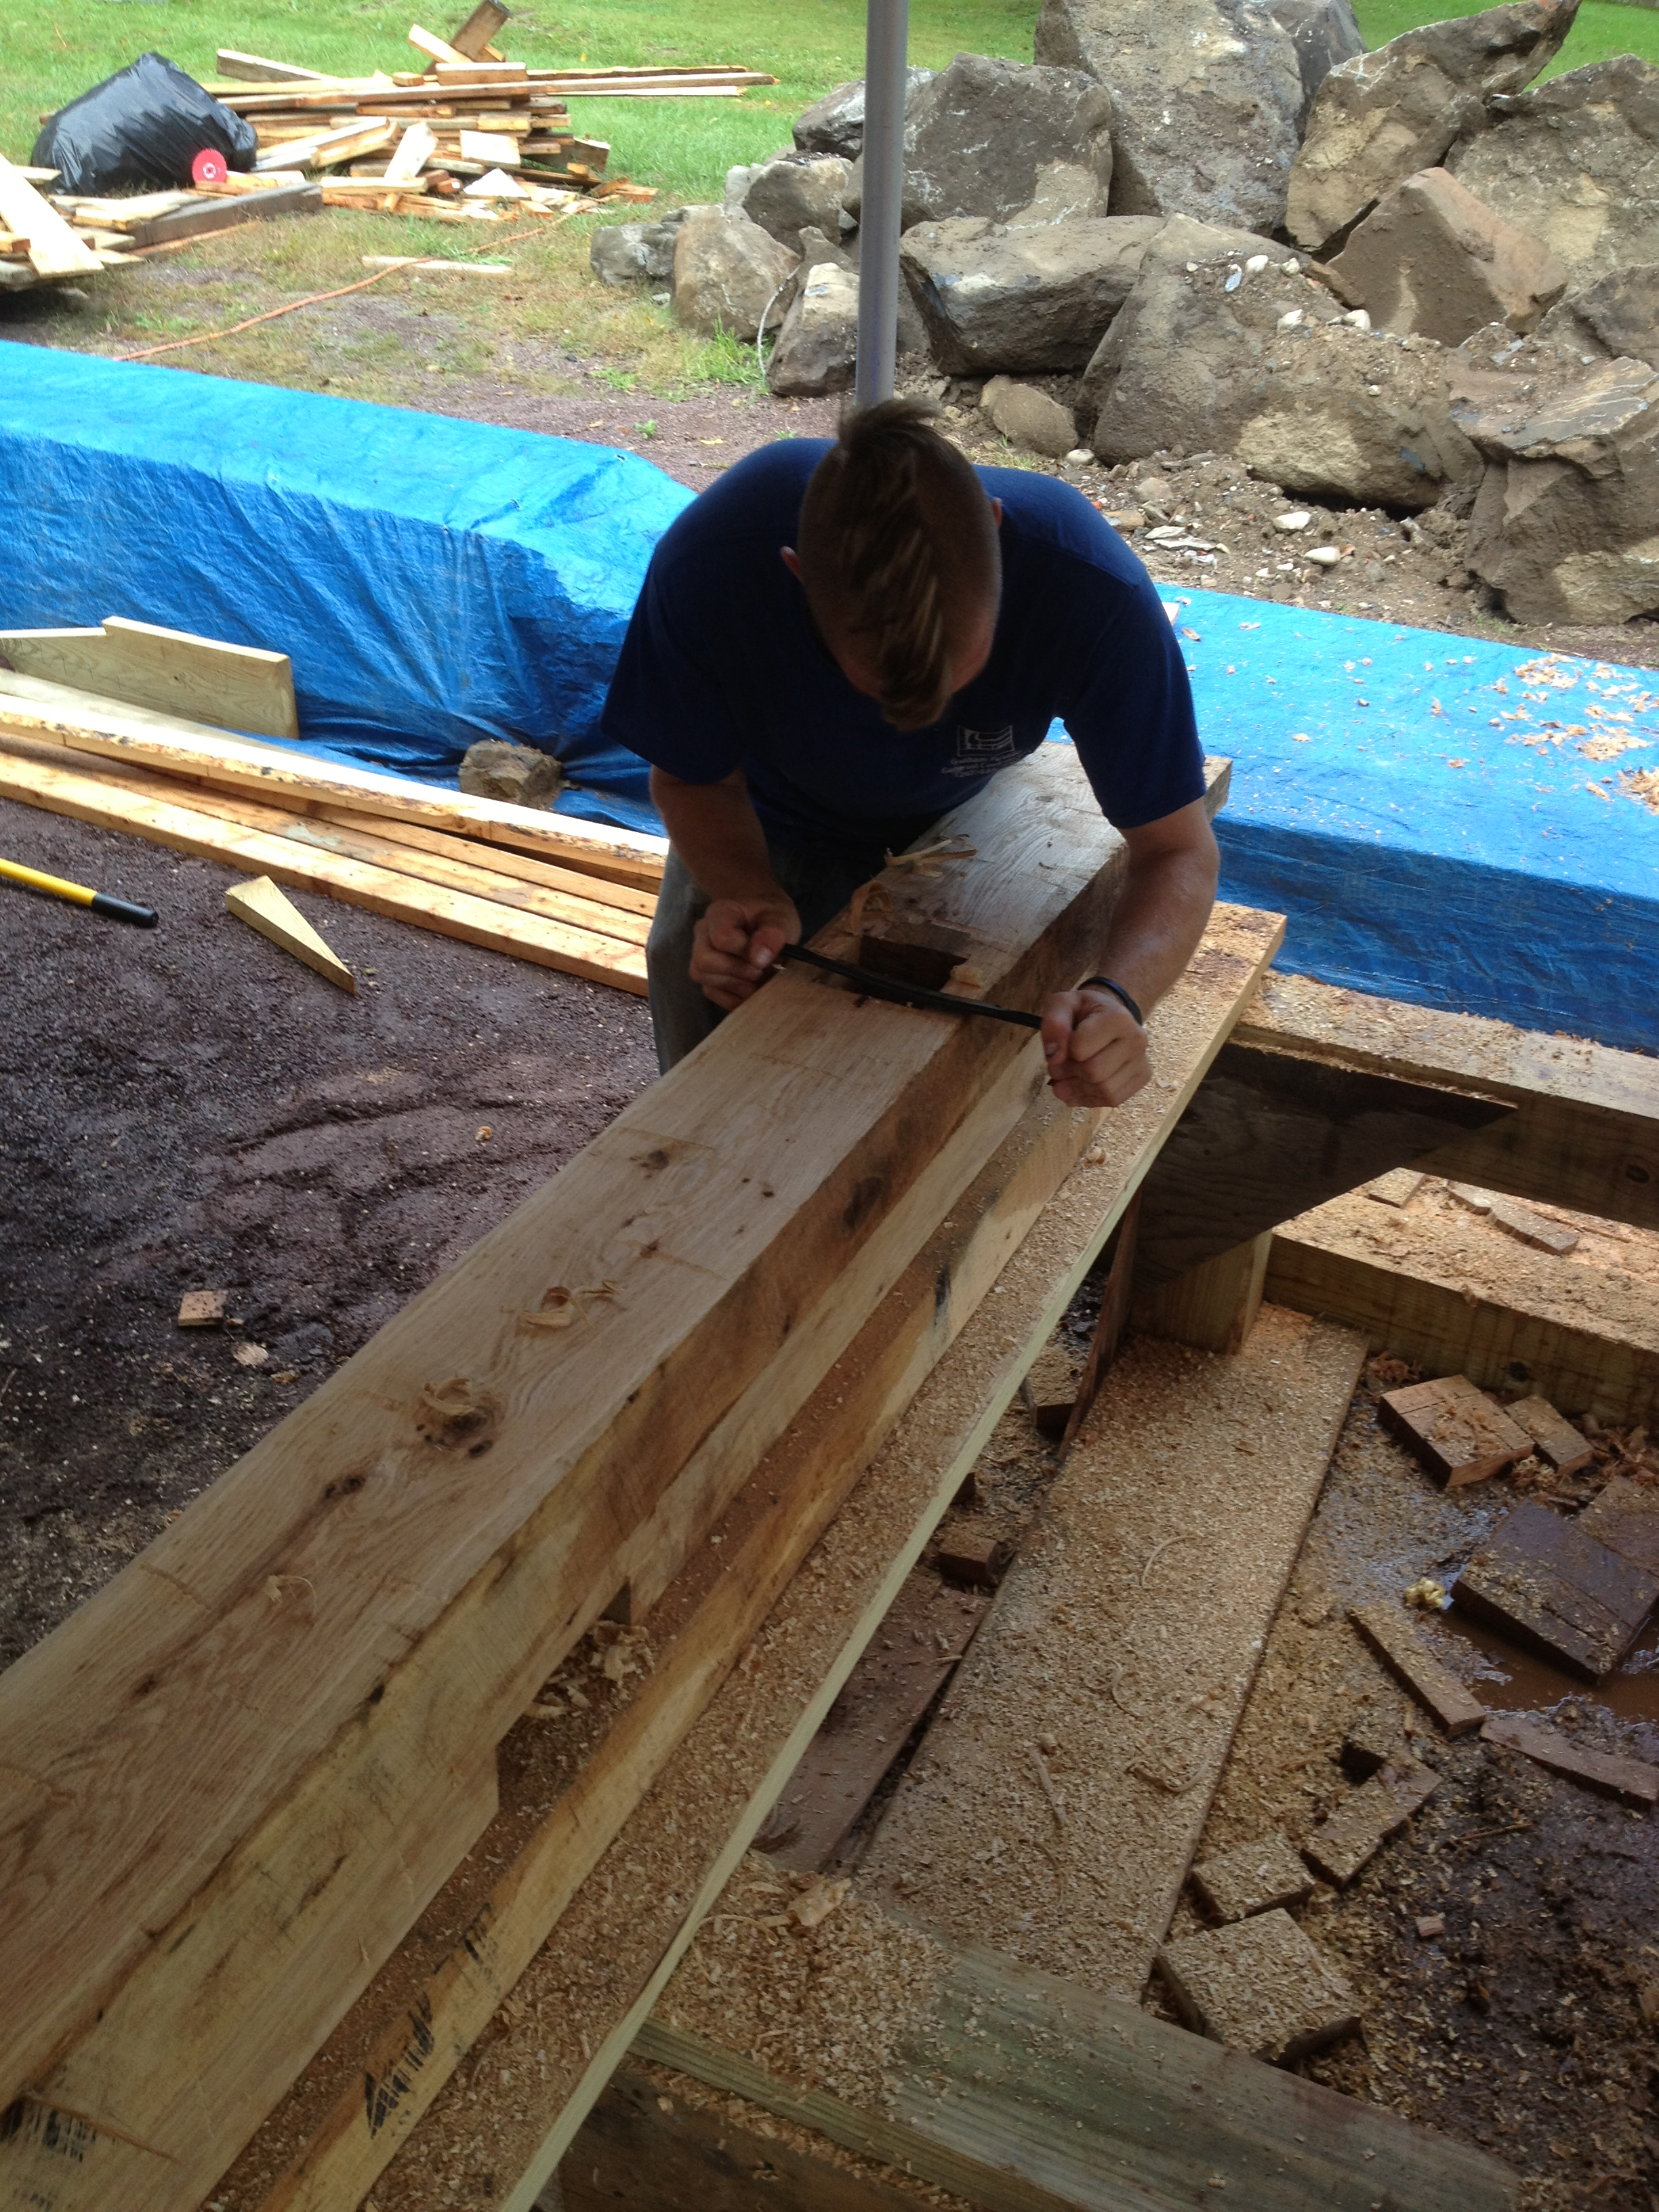 terri feralio - hand hewn and draw knife timber framing.JPG